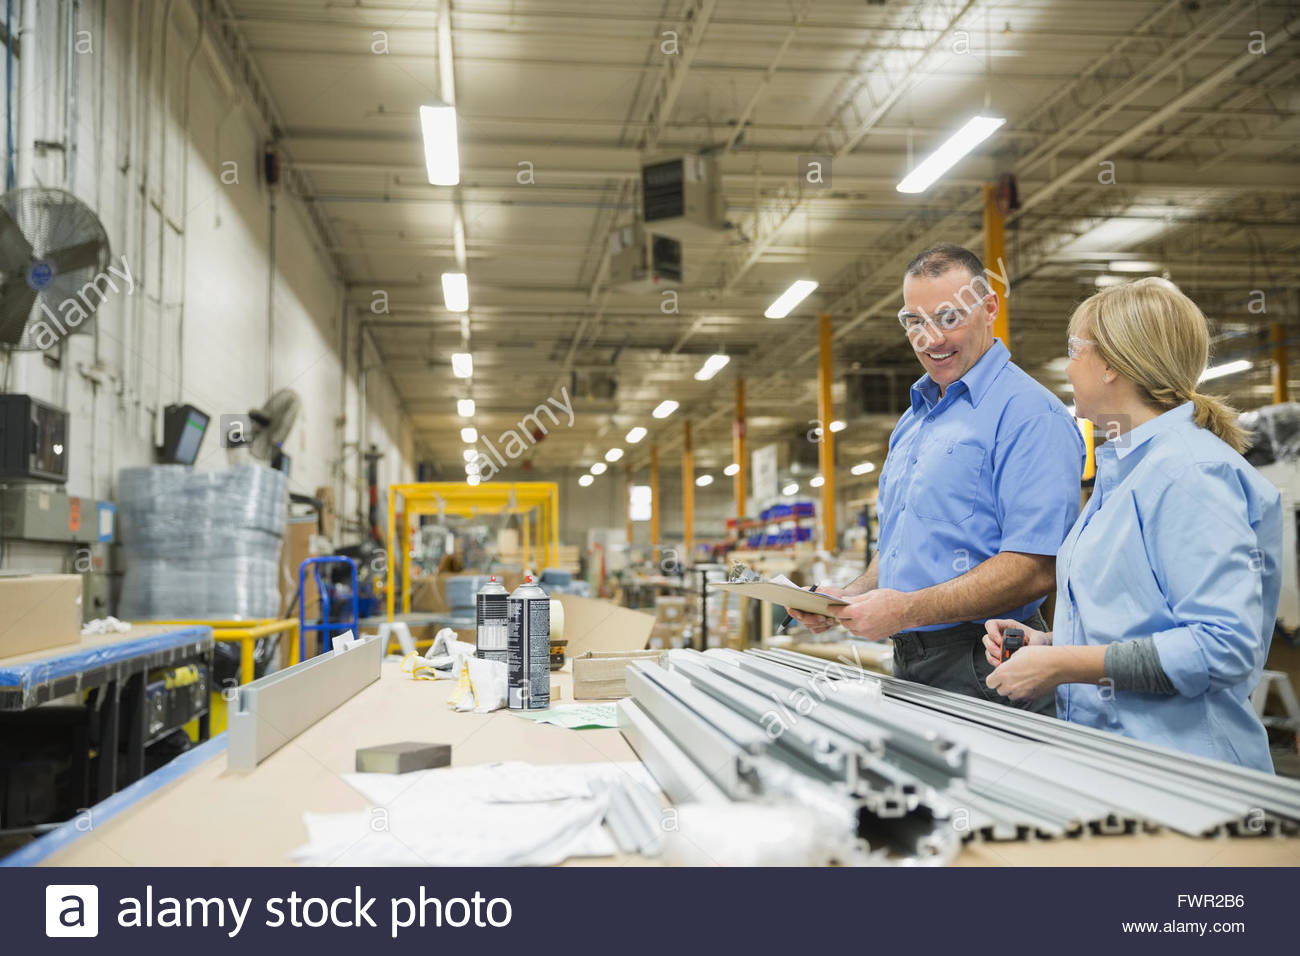 Manual workers in metal factory - Stock Image